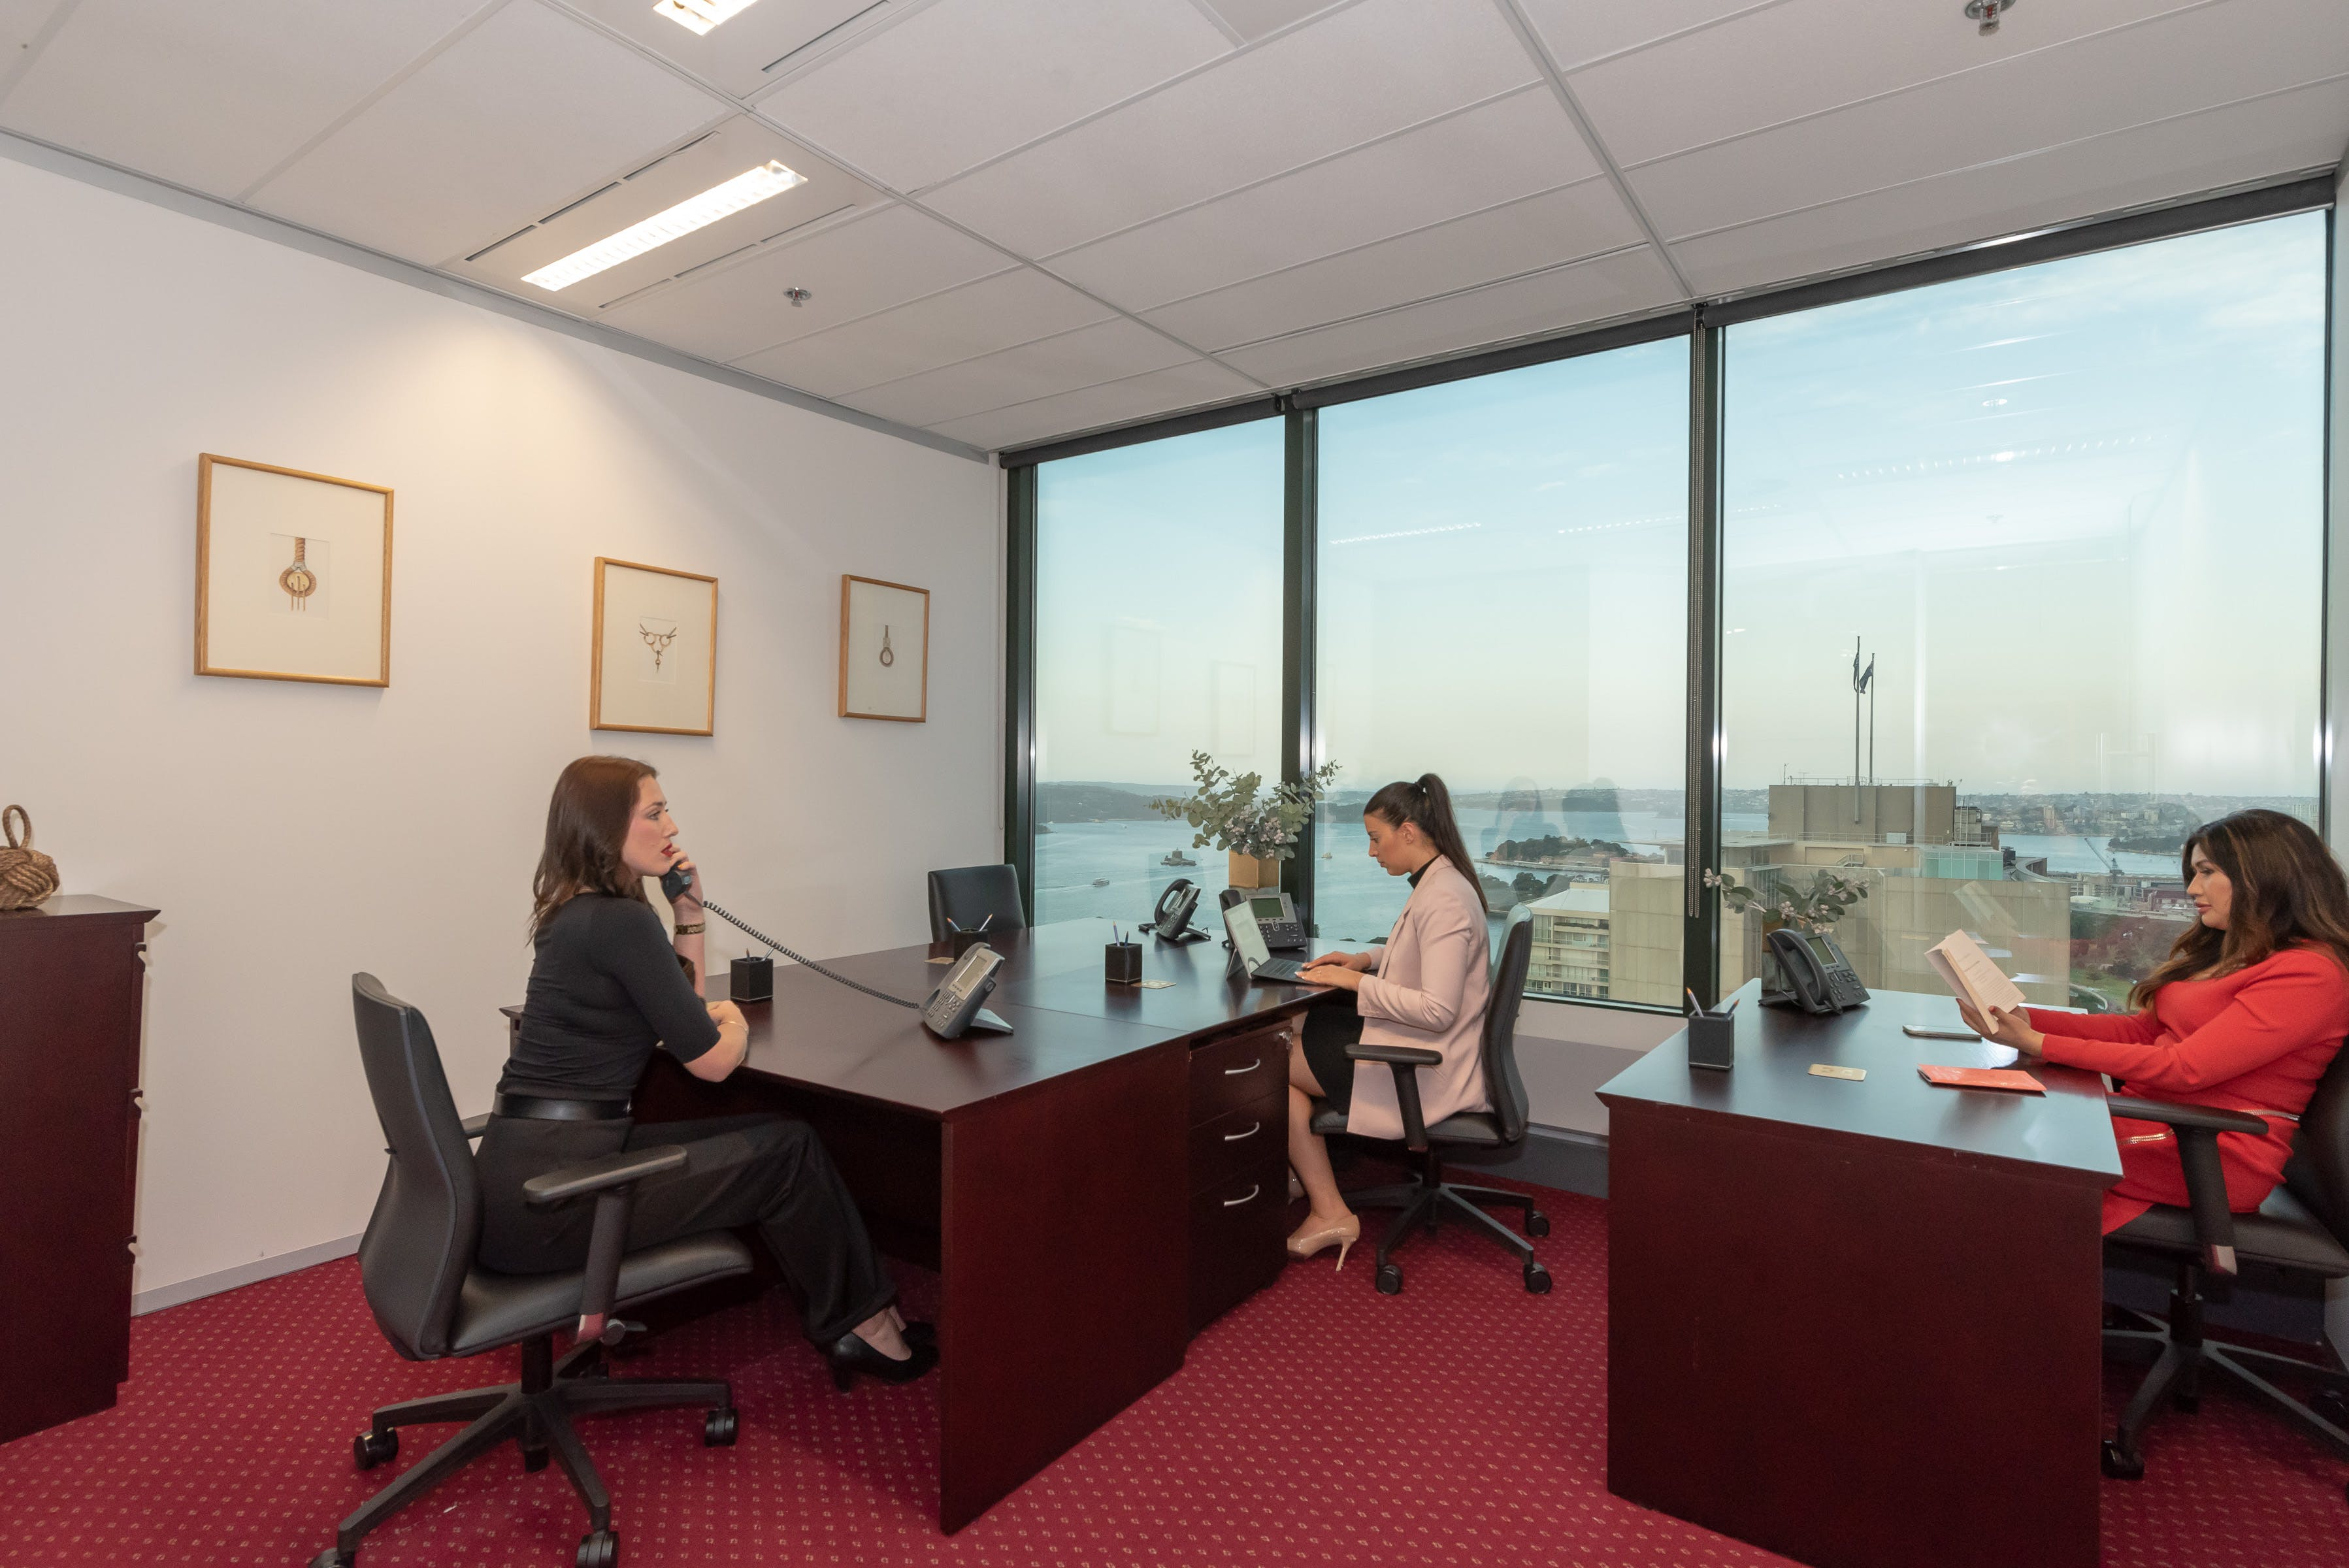 Day Suite 2, private office at Miller Street, image 11